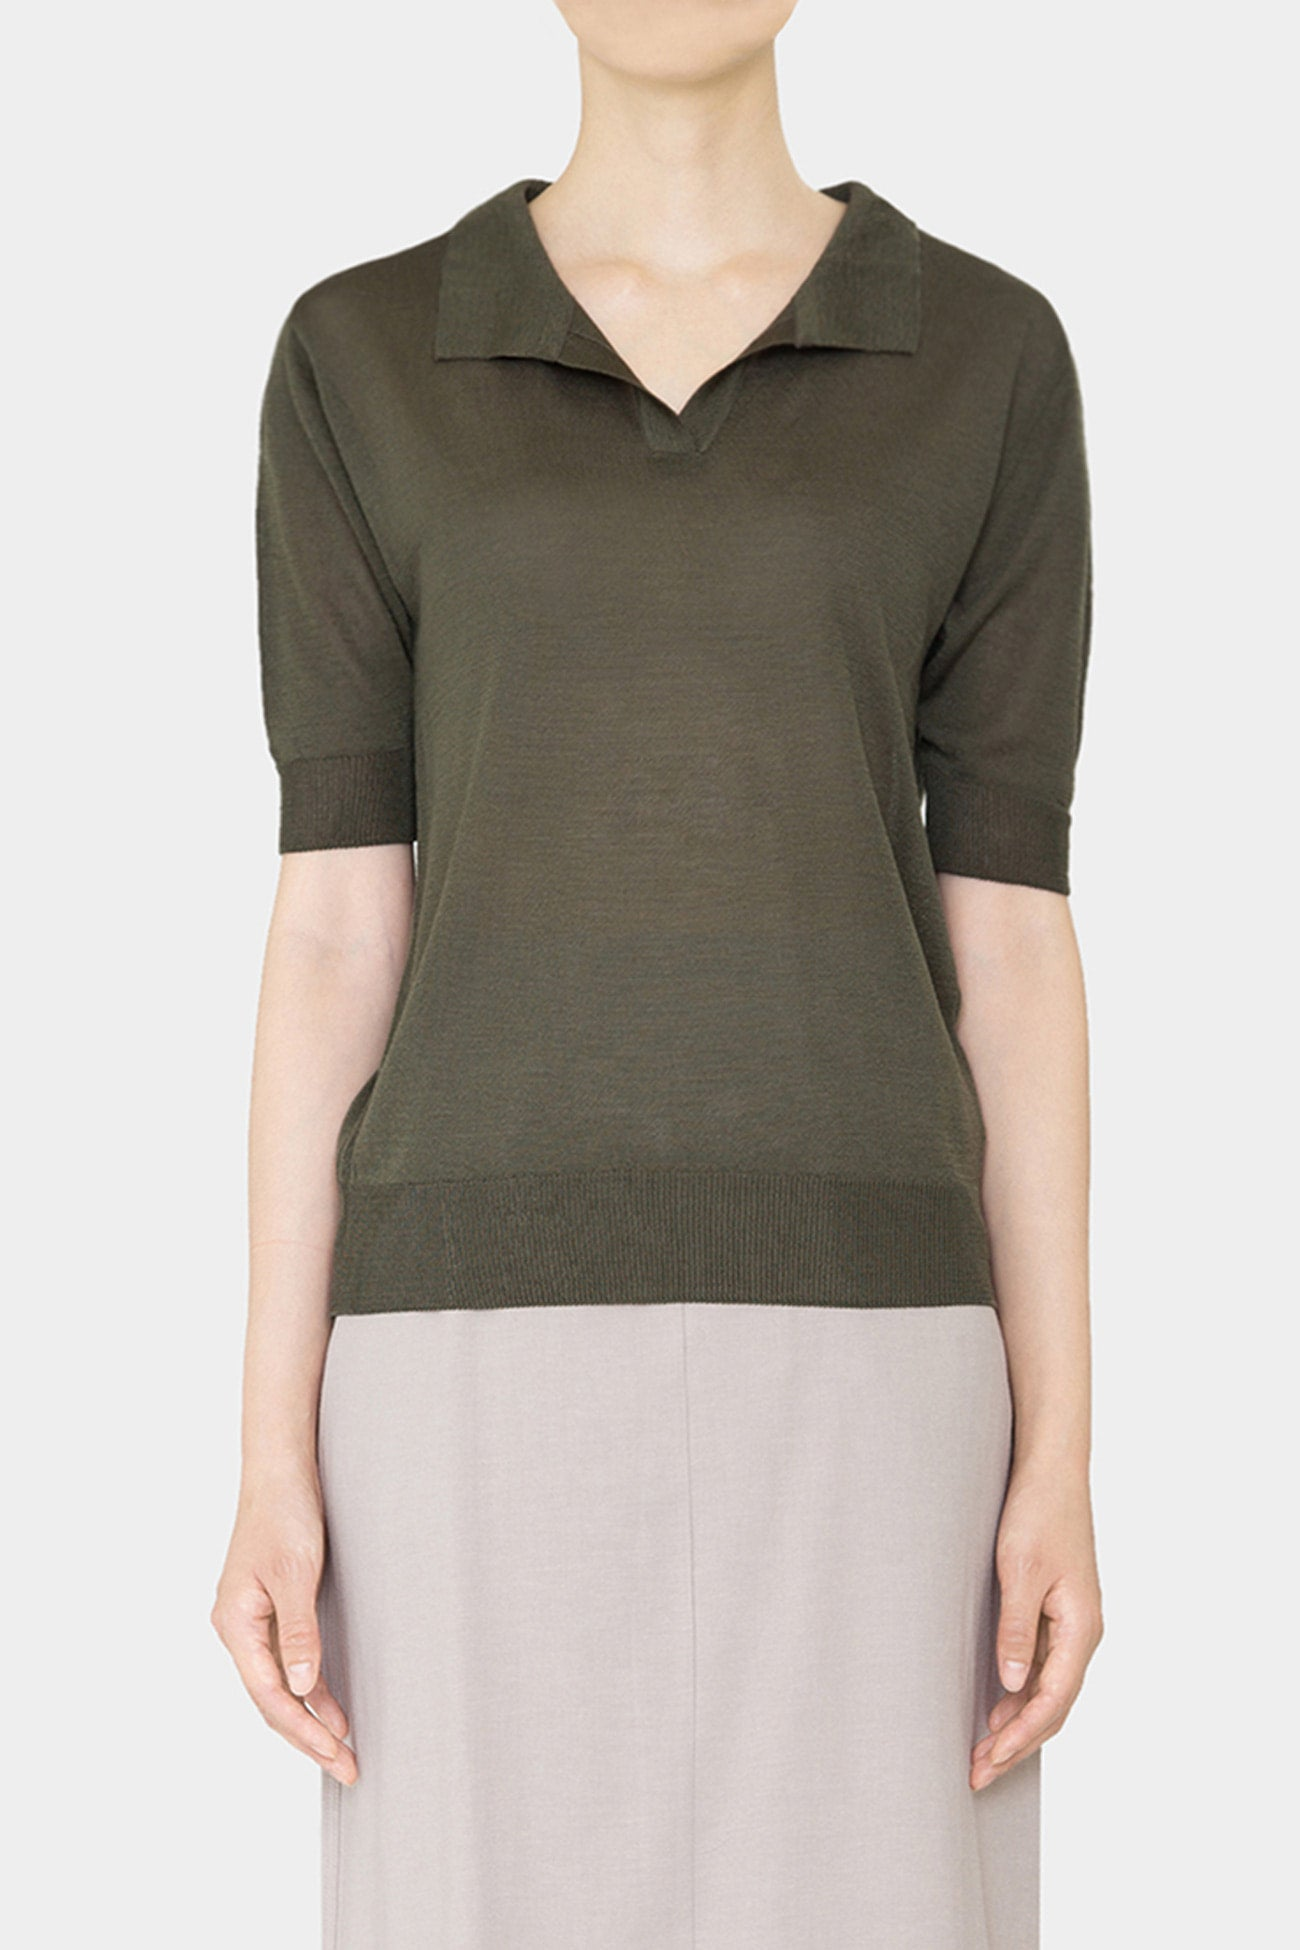 KHAKI KOU LIGHT POLO KNIT